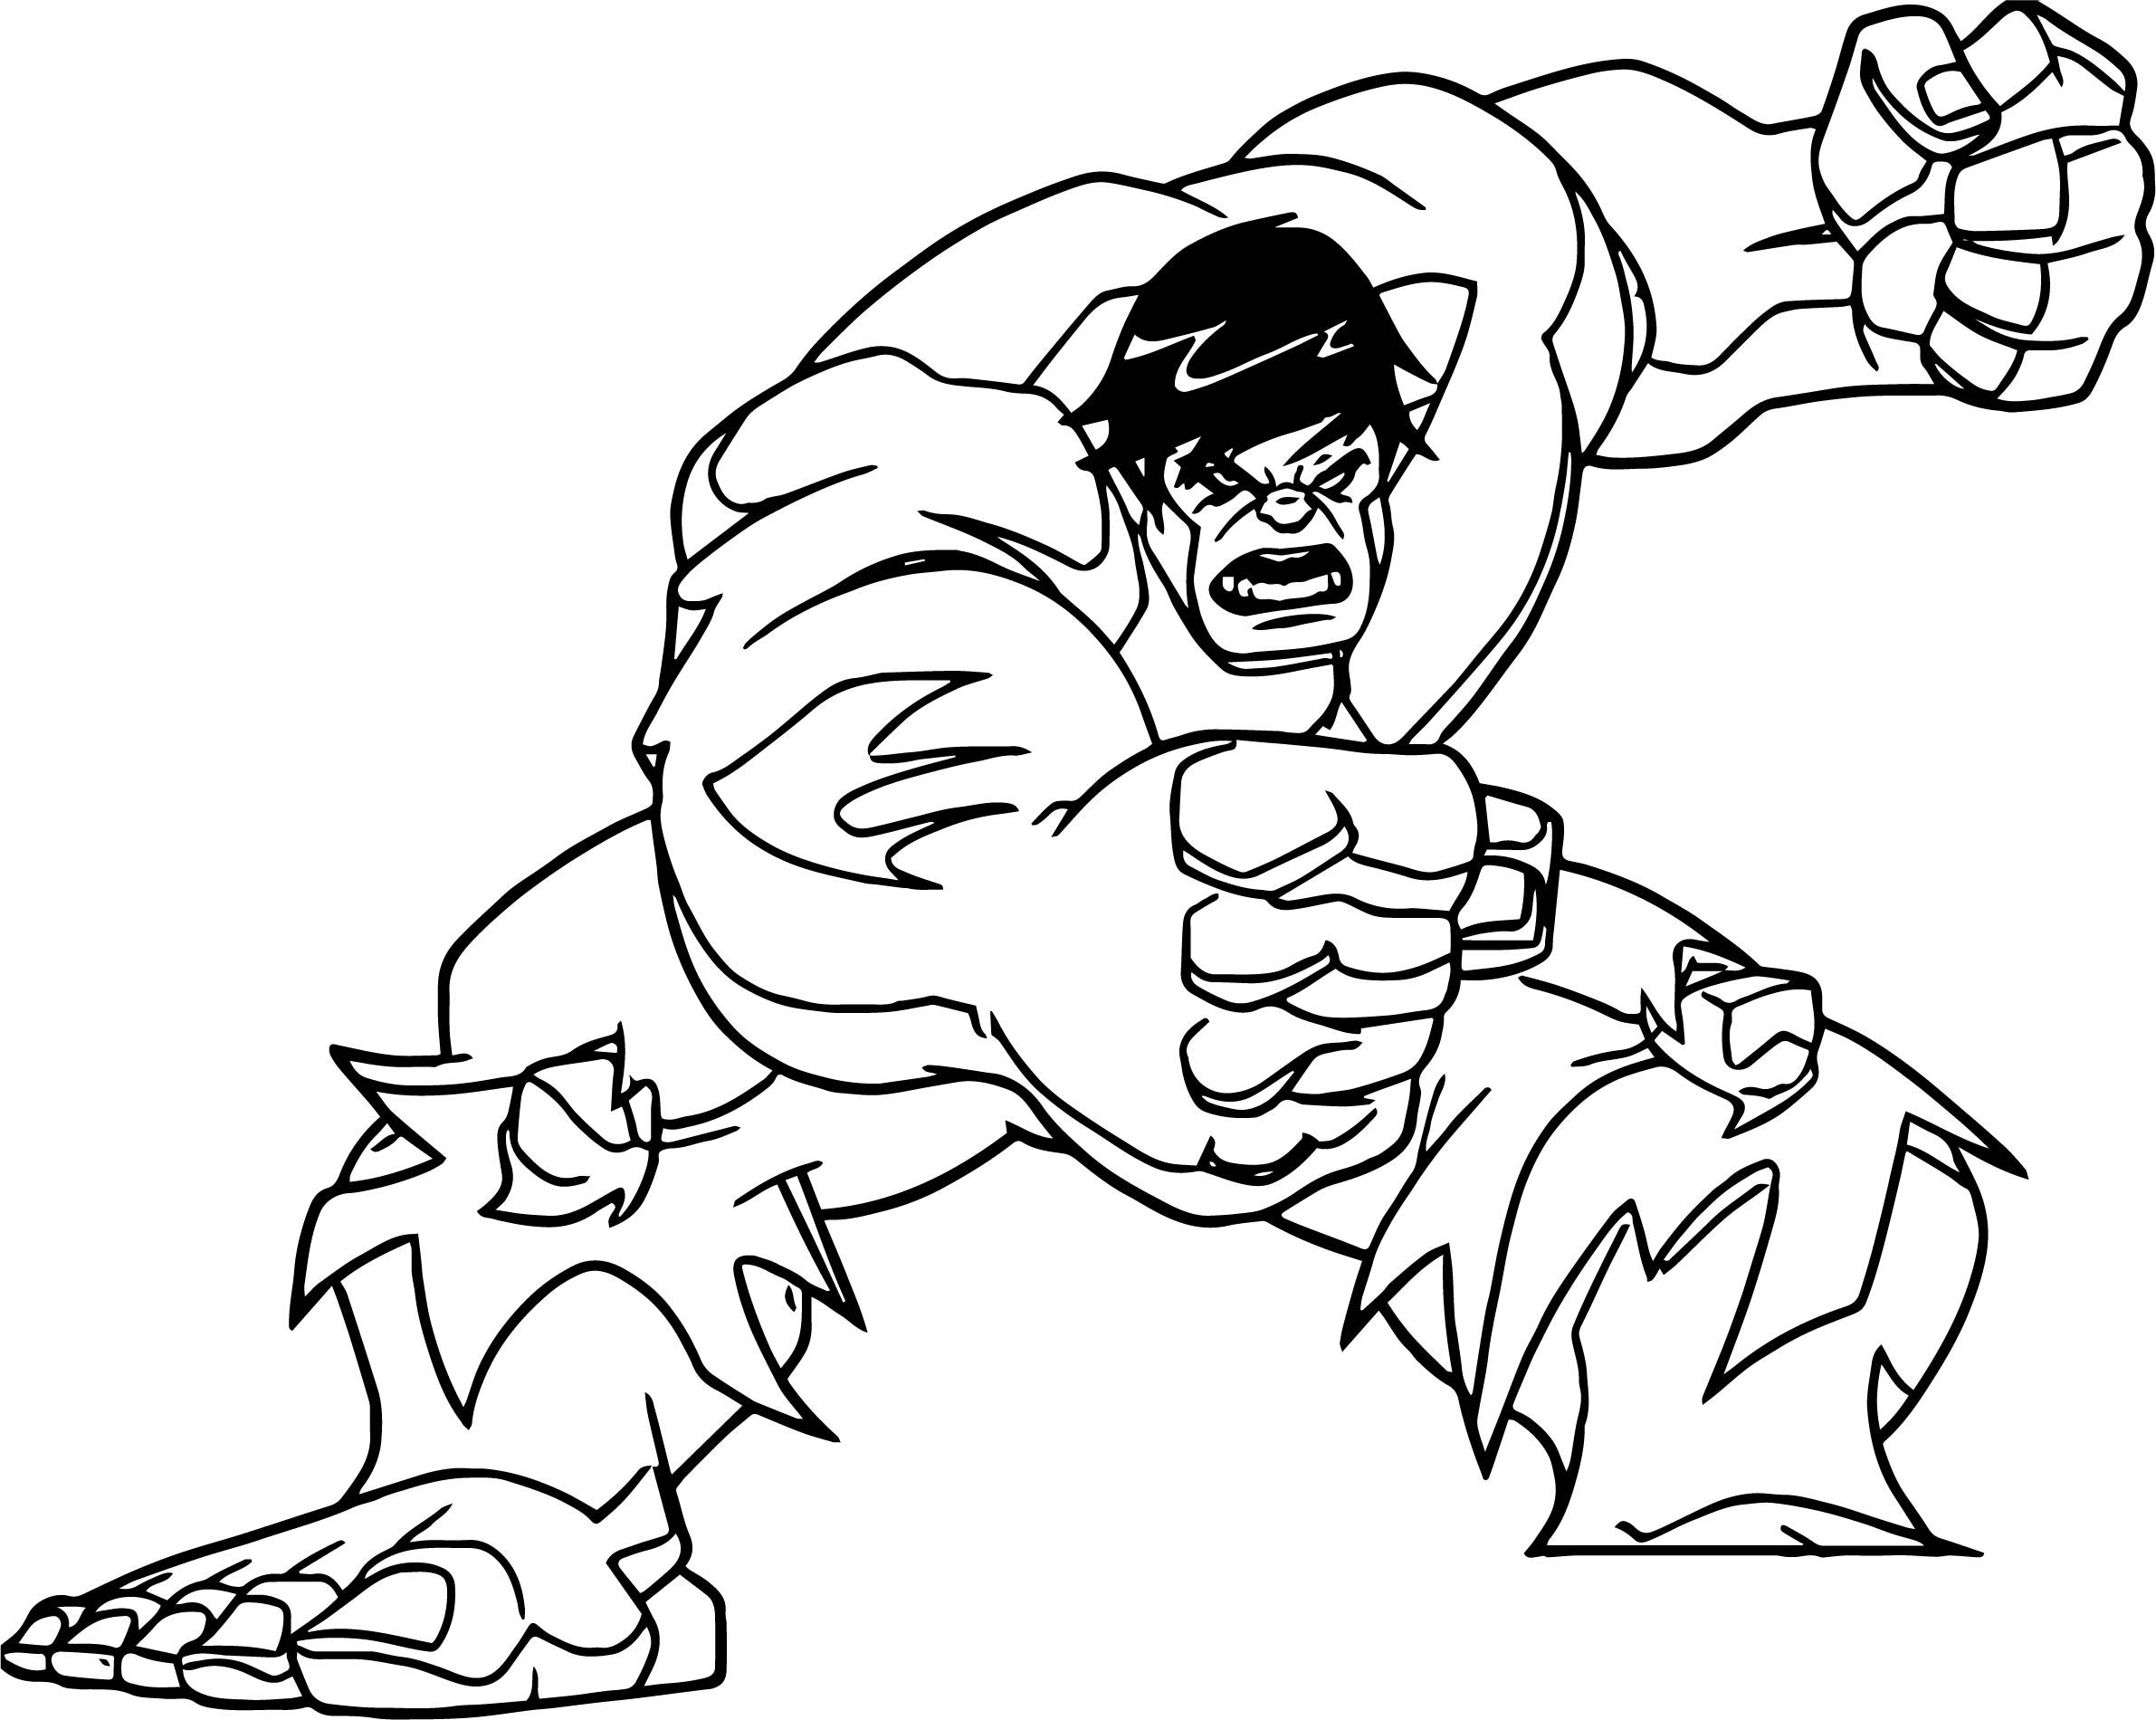 Nice Avengers Hulk Coloring Page Hulk Coloring Pages Superman Coloring Pages Superhero Coloring Pages